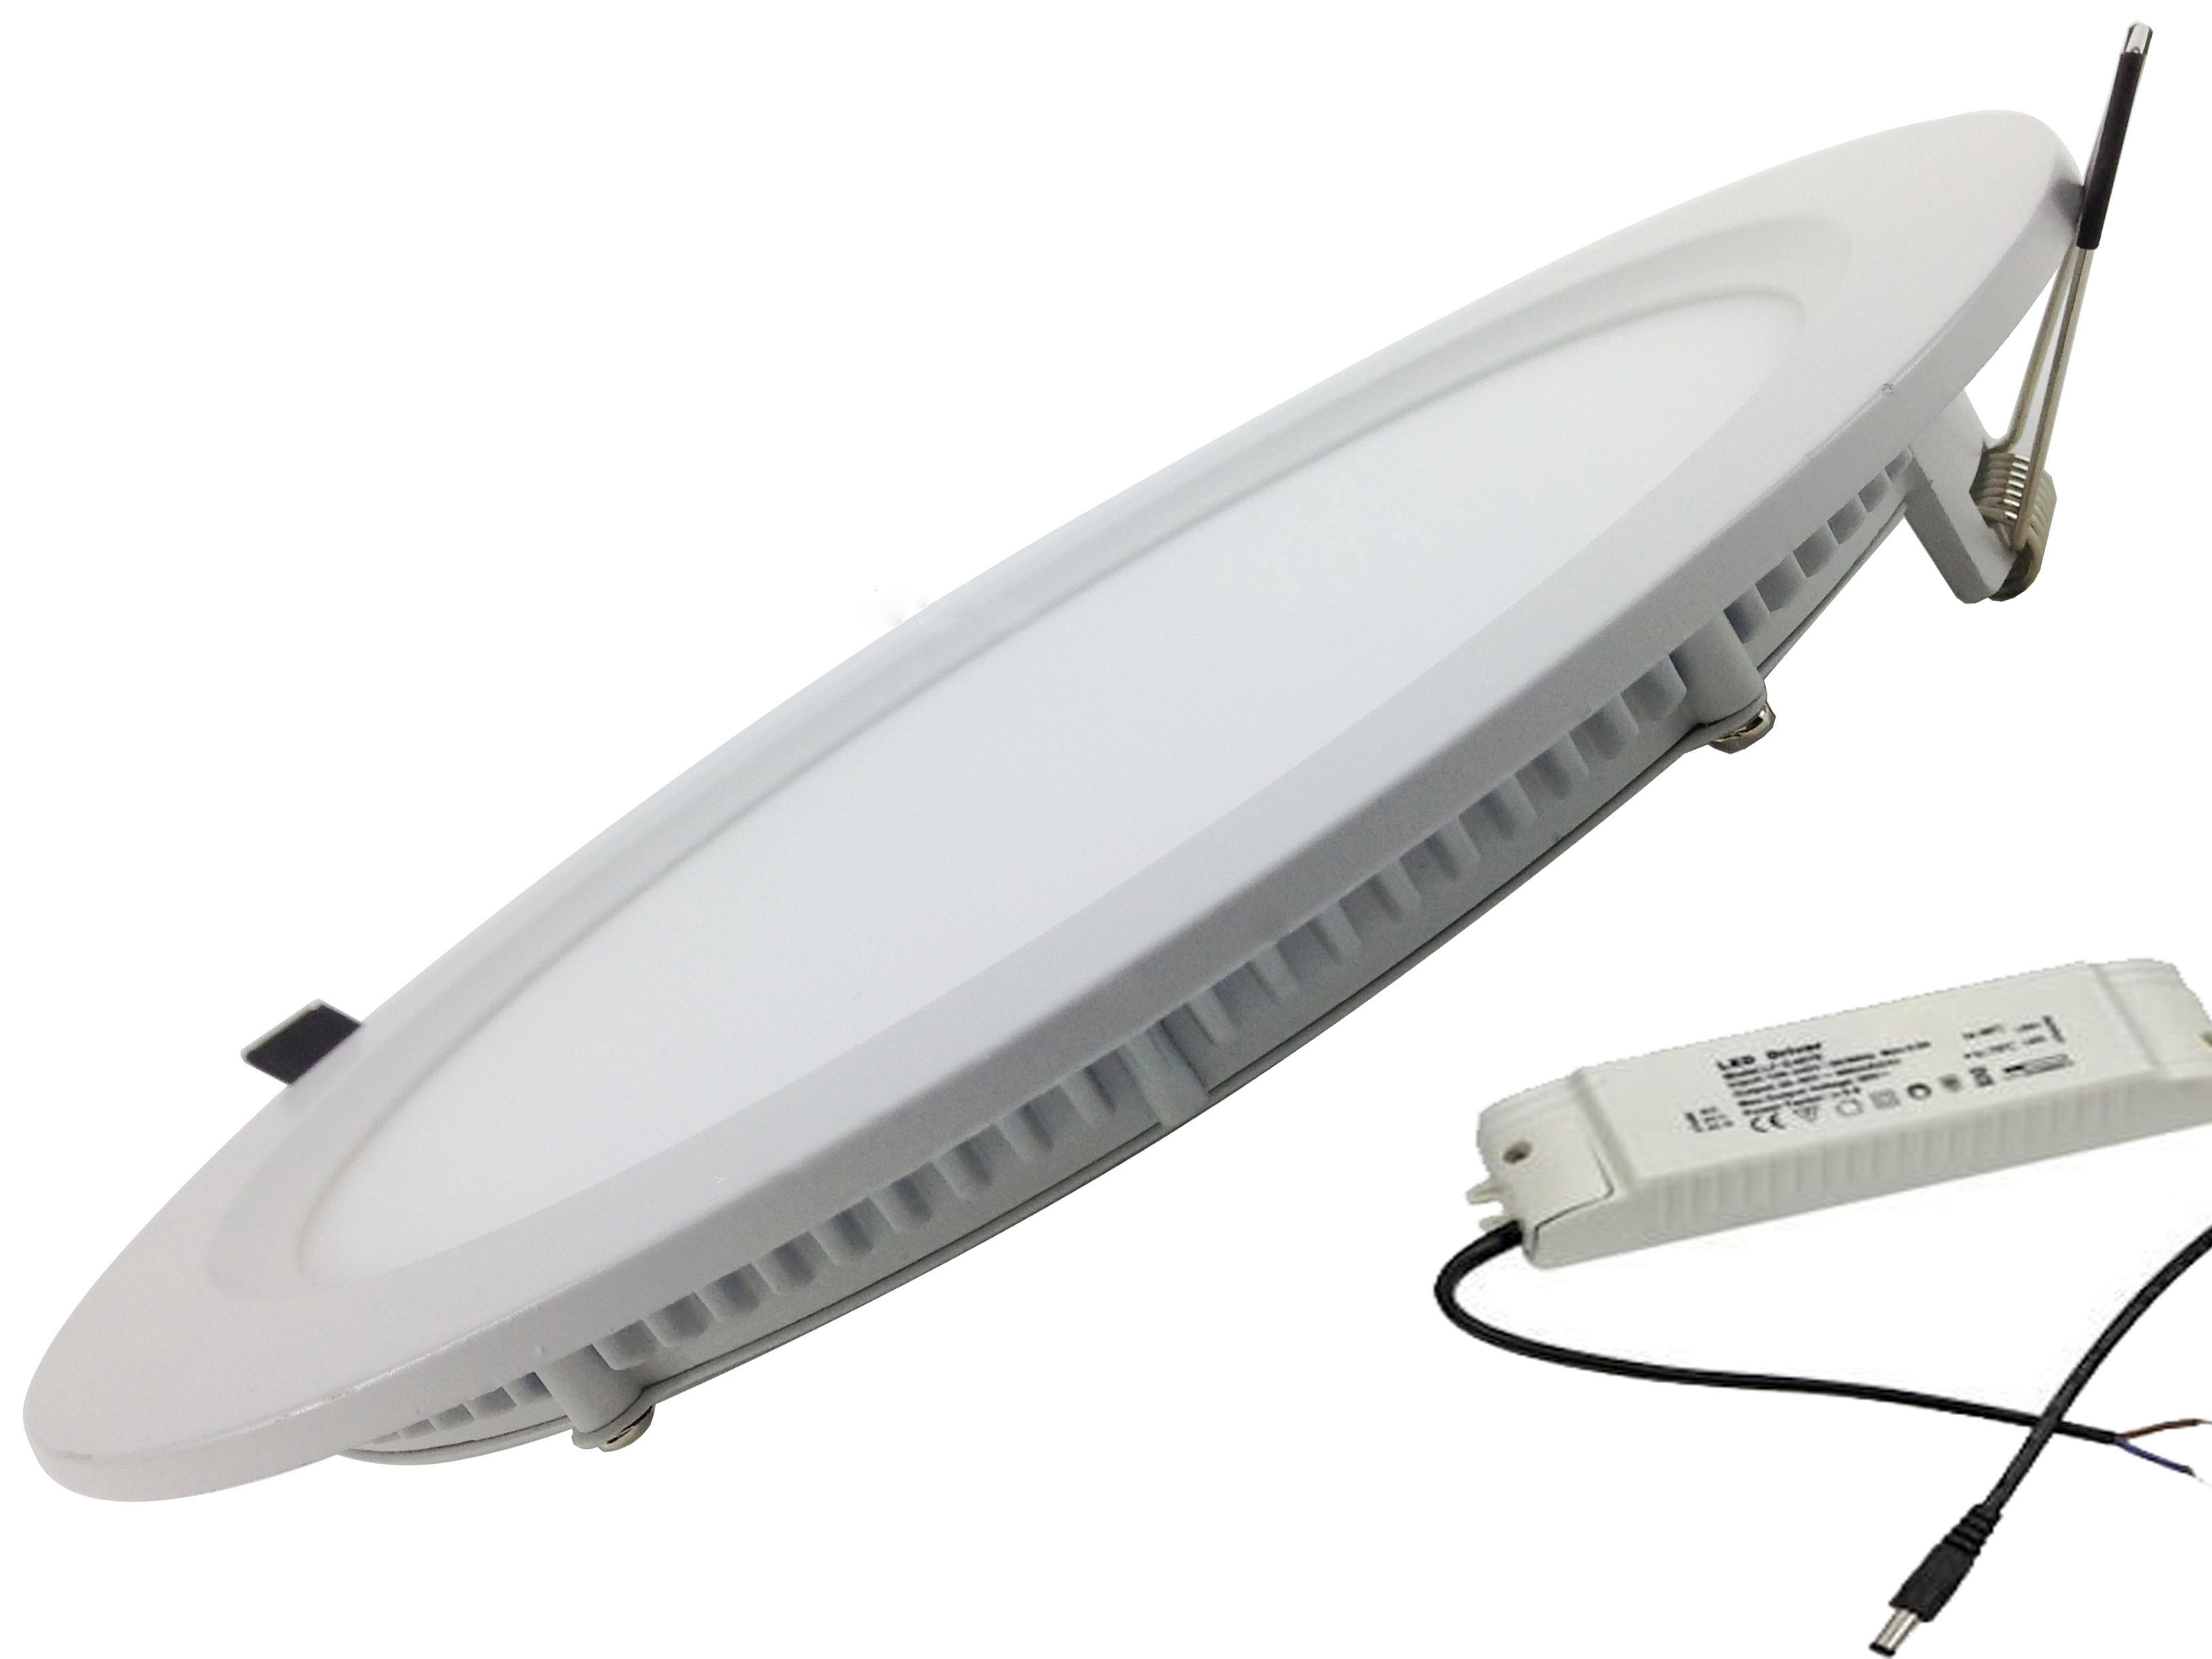 Plafoniere Da Incasso A Led : Faretto led da incasso 18w superslim diametro 22cm